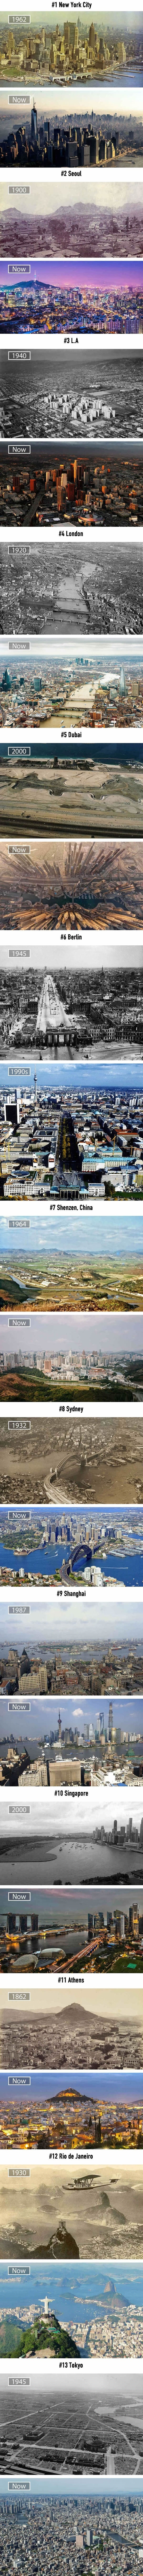 13 cities, then vs now